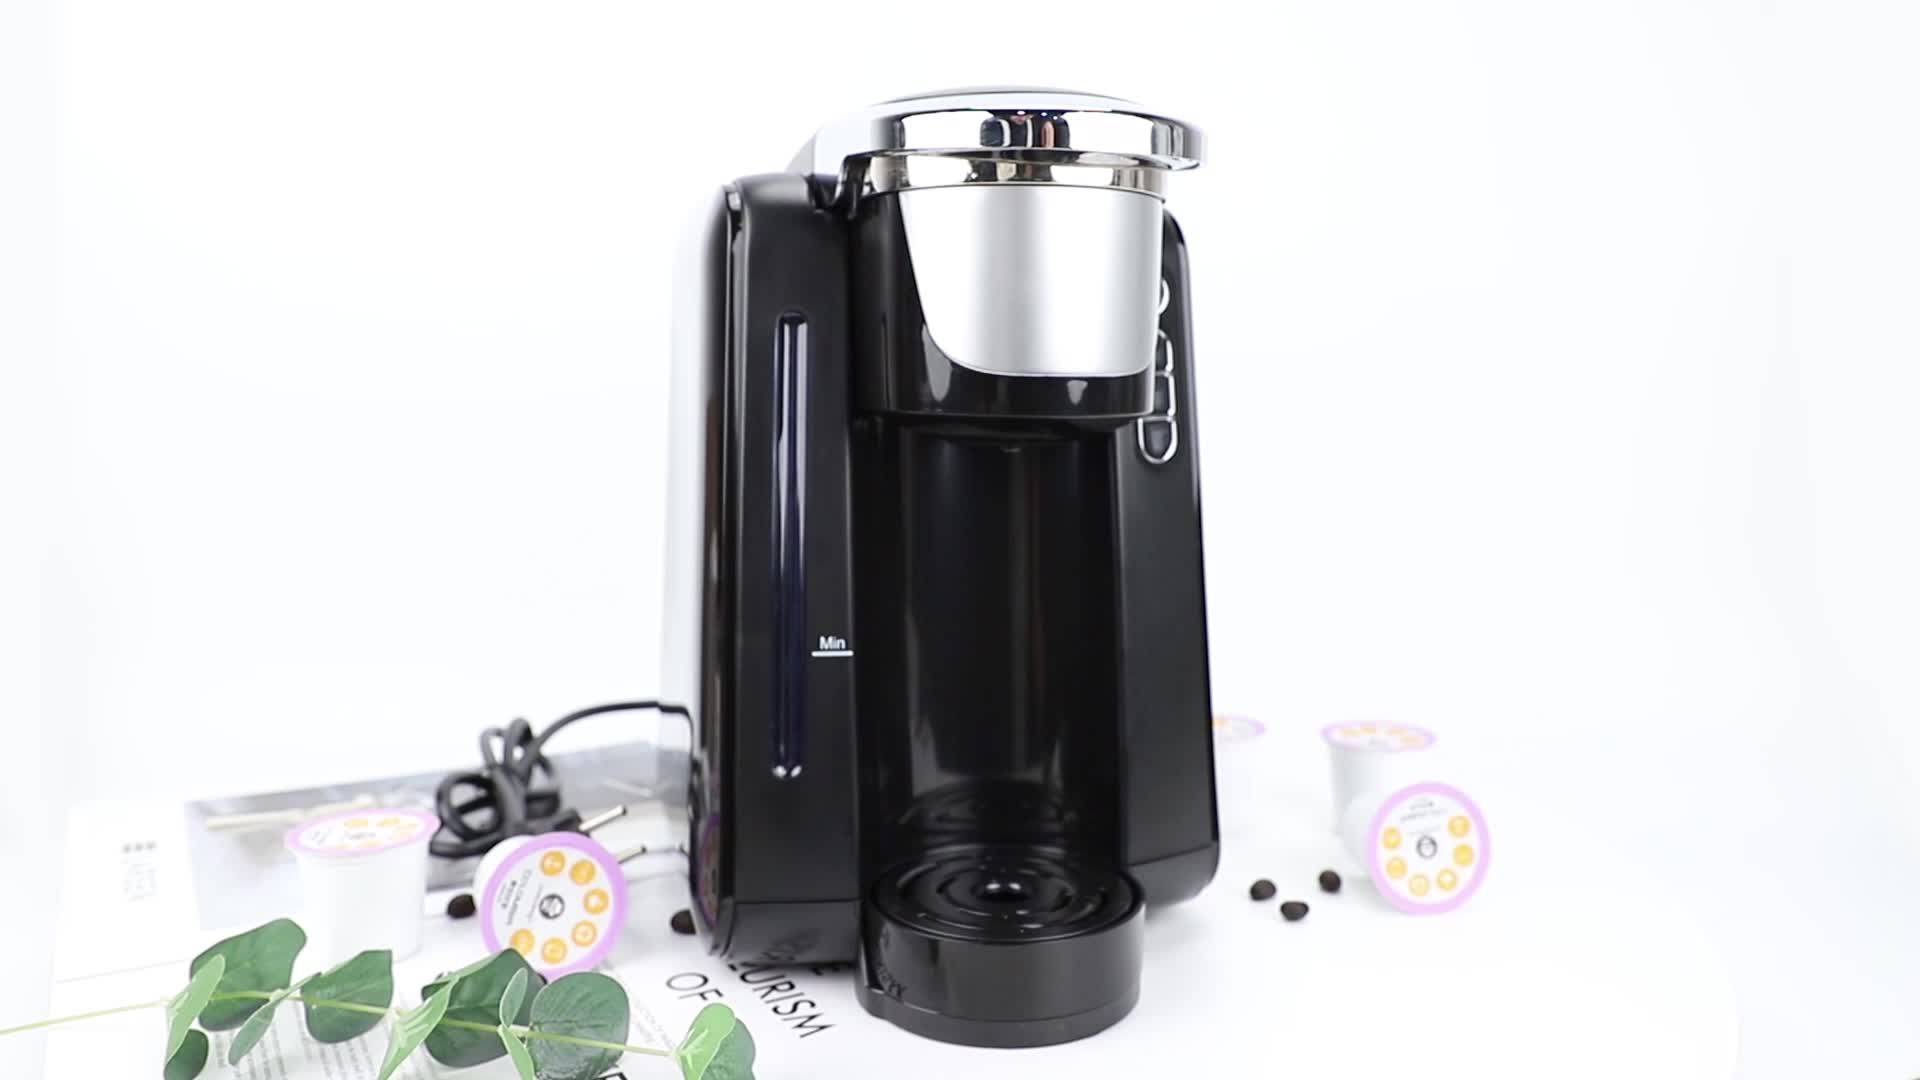 China dolce gusto nespresso ese coffee pod coffee machine fully automatic coffee maker 19 bar pump for multi capsules